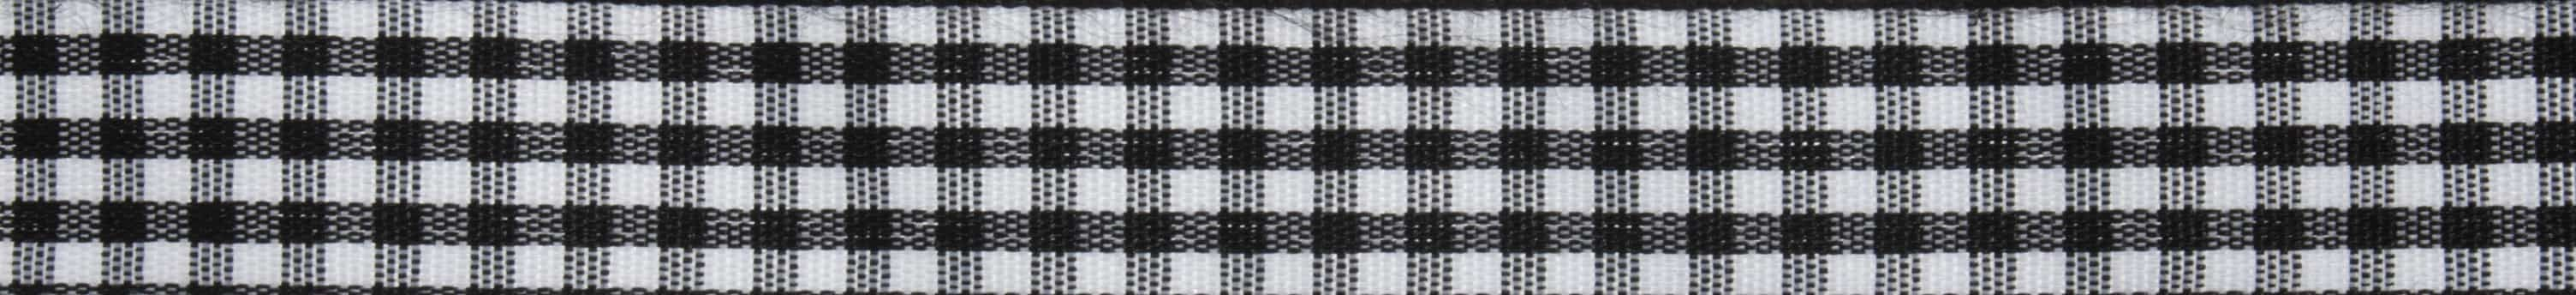 15mm Black Gingham Ribbon 5m Reel